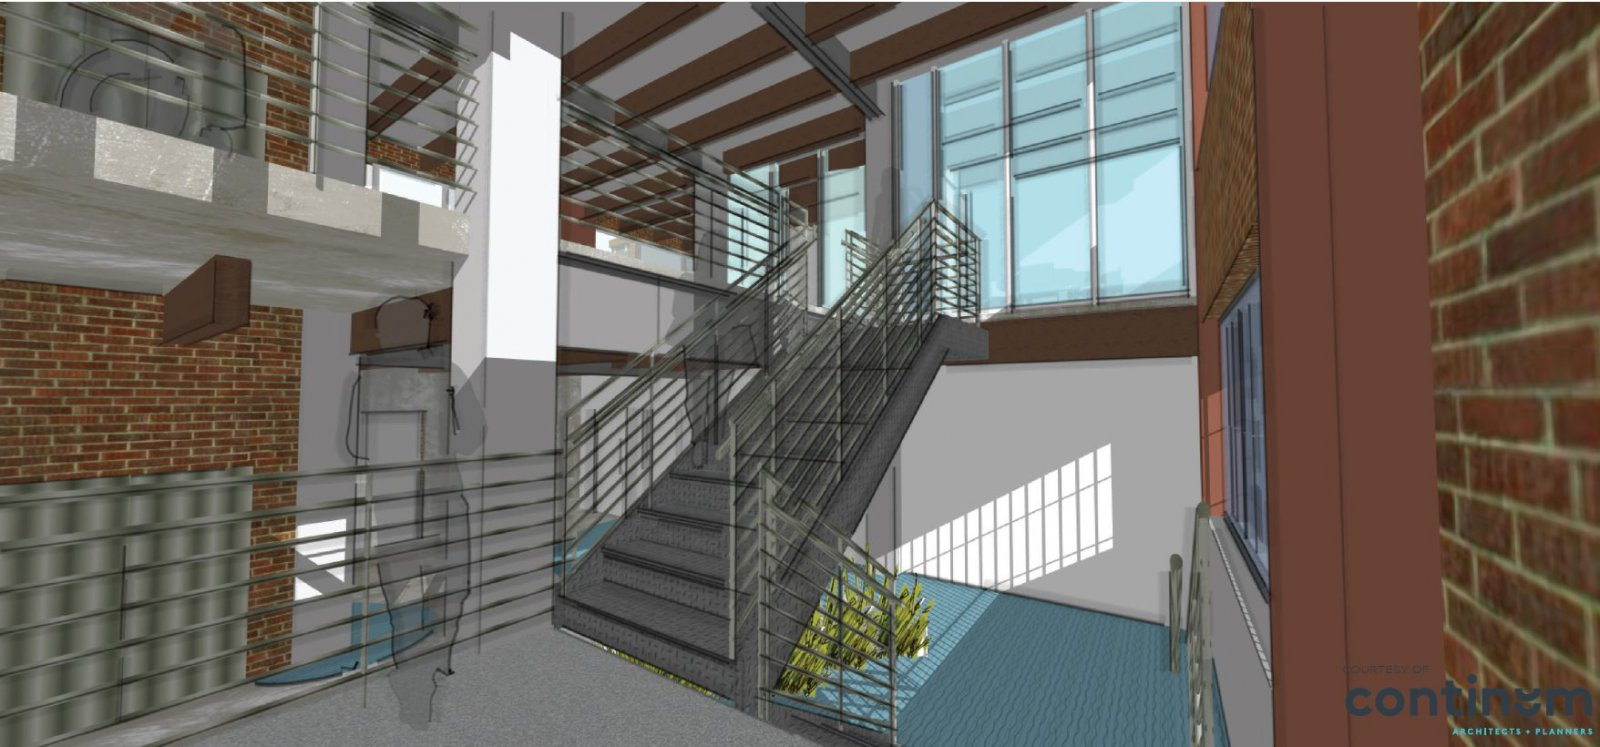 Welford Sanders Lofts Rendering